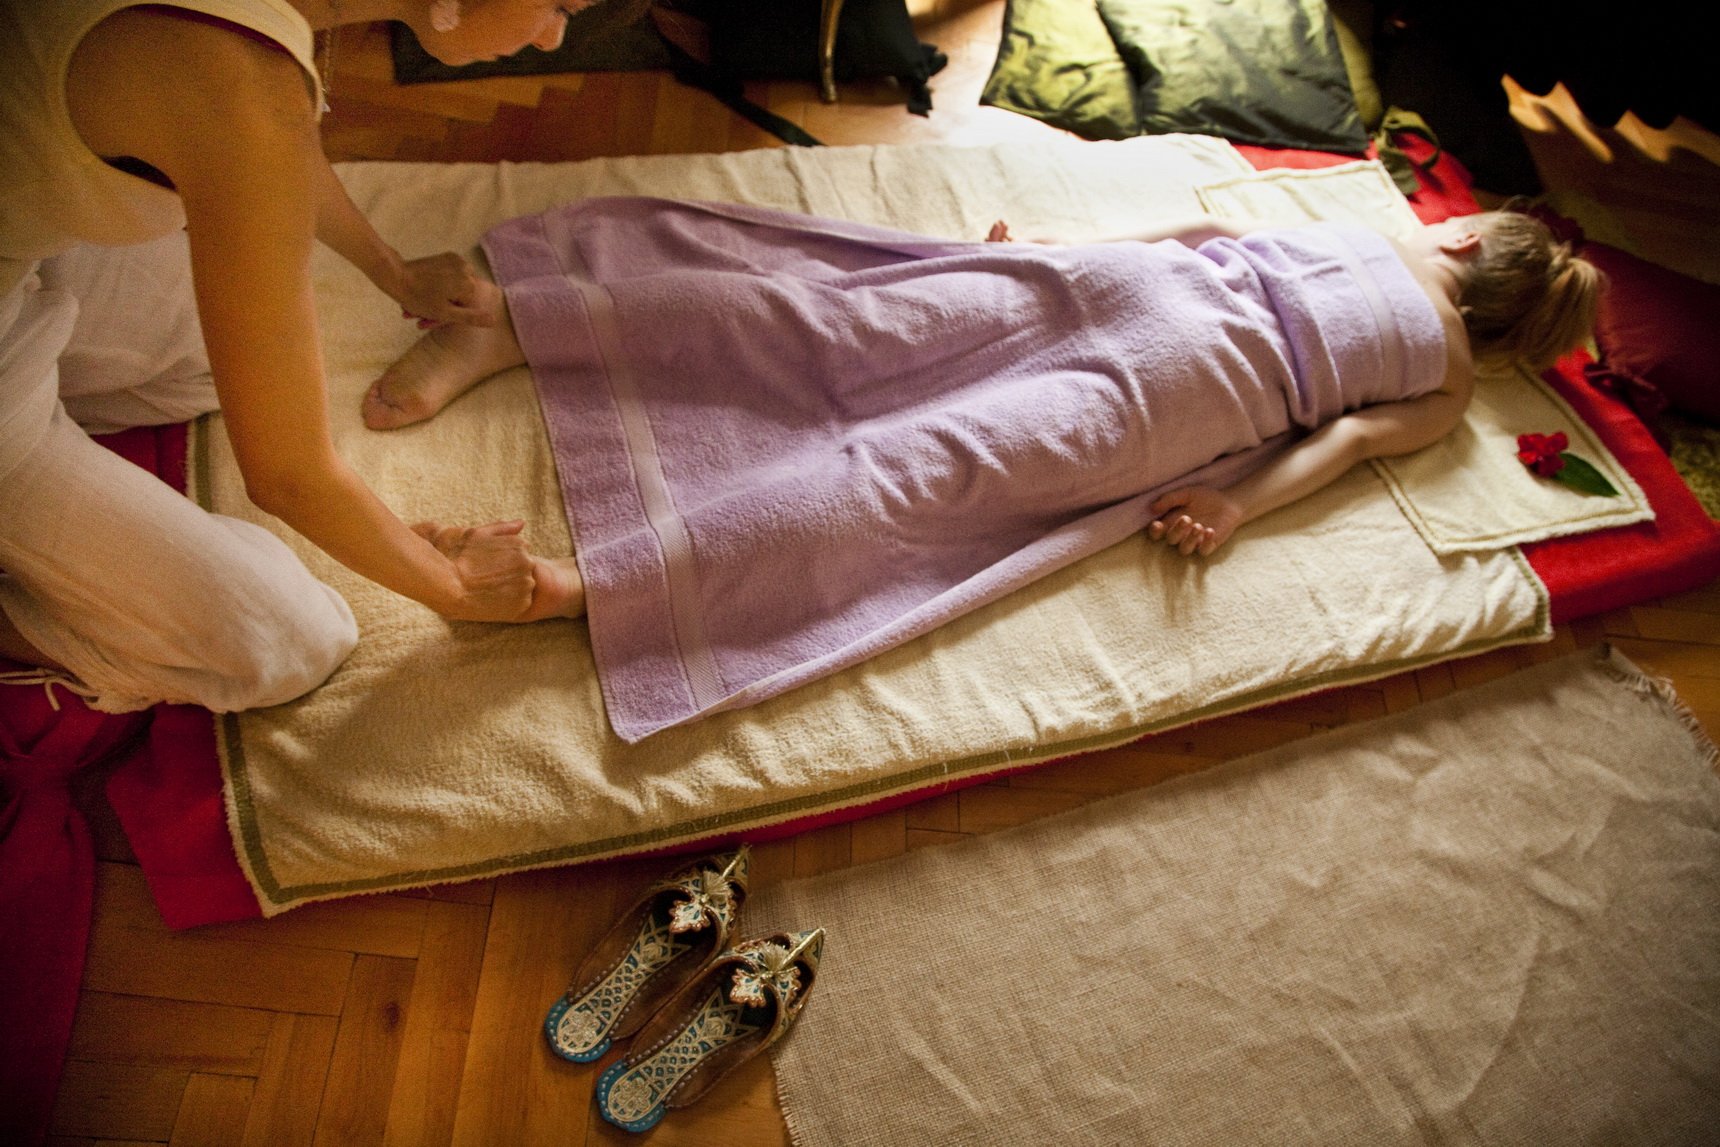 Choice Chinese Medicine - The particular Benefits IMG_2924-Thai-at-the-Feet14-9-